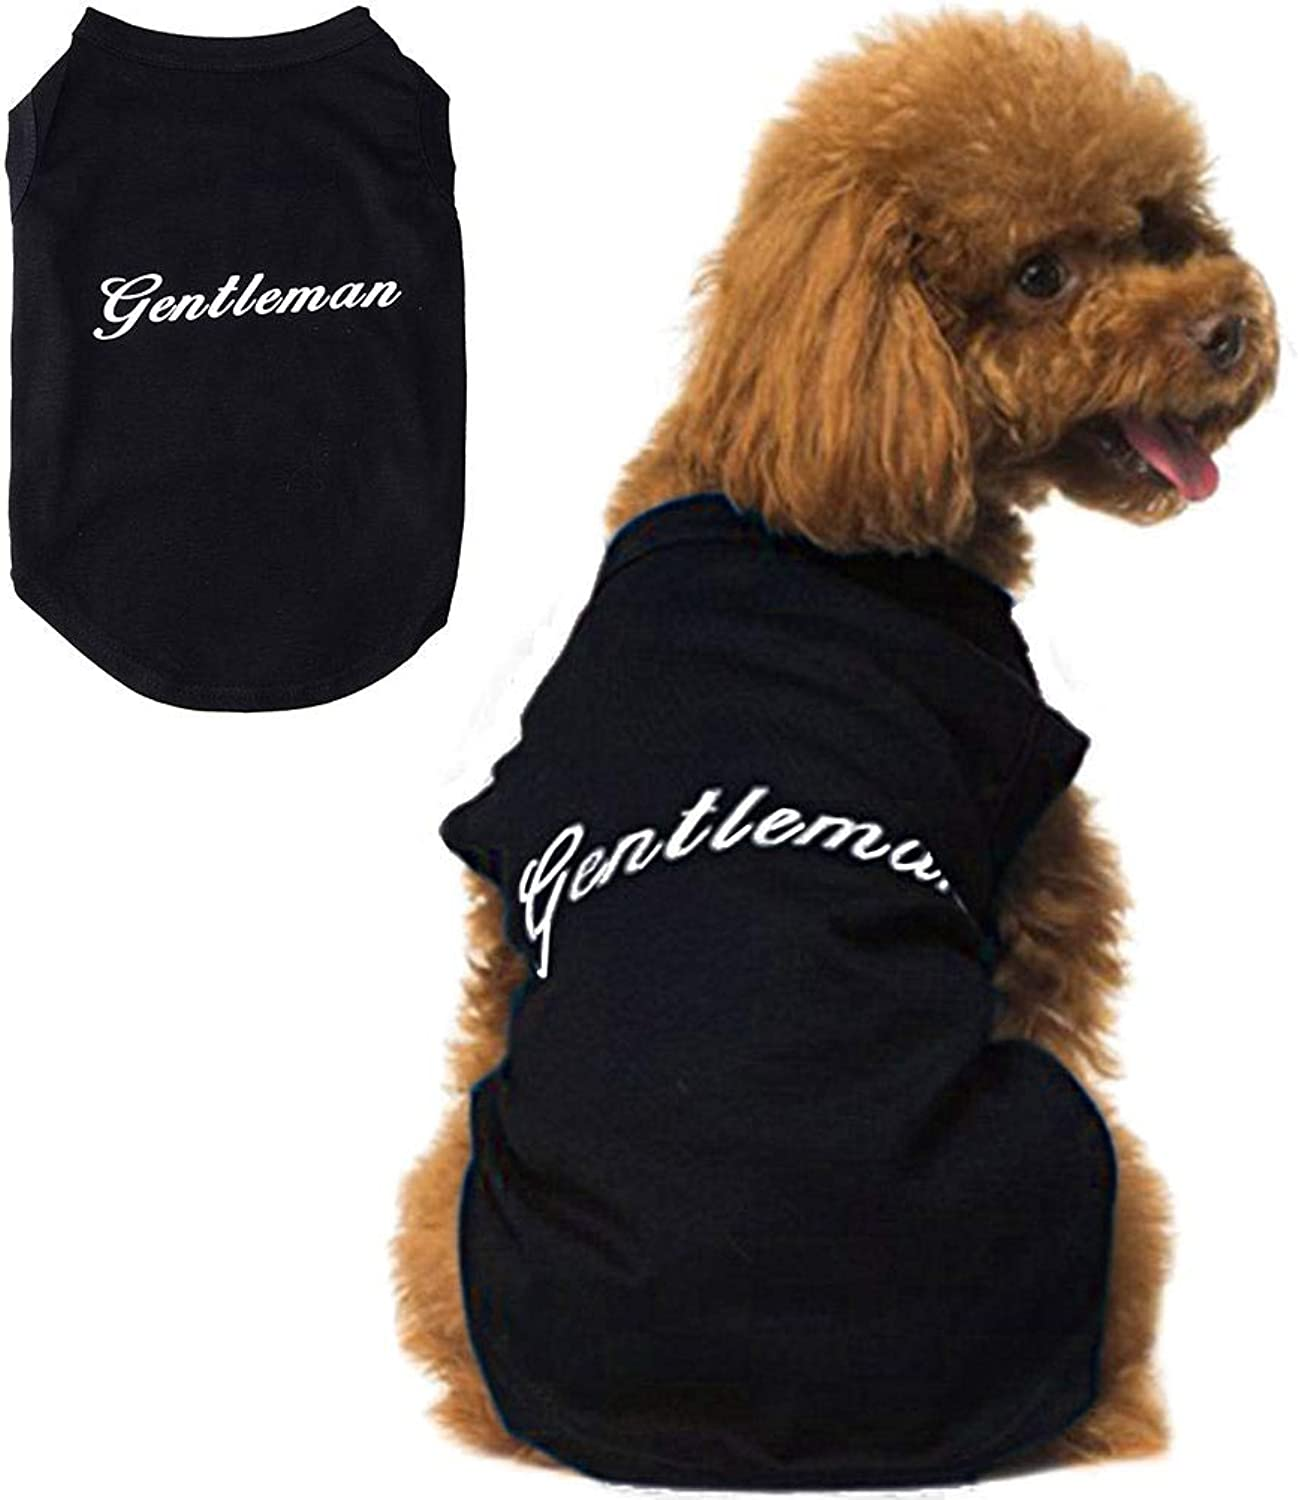 SCENEREAL Small Dog T Shirt Cute Fashion Clothes Gentleman for Pets Puppy Cats, Black S